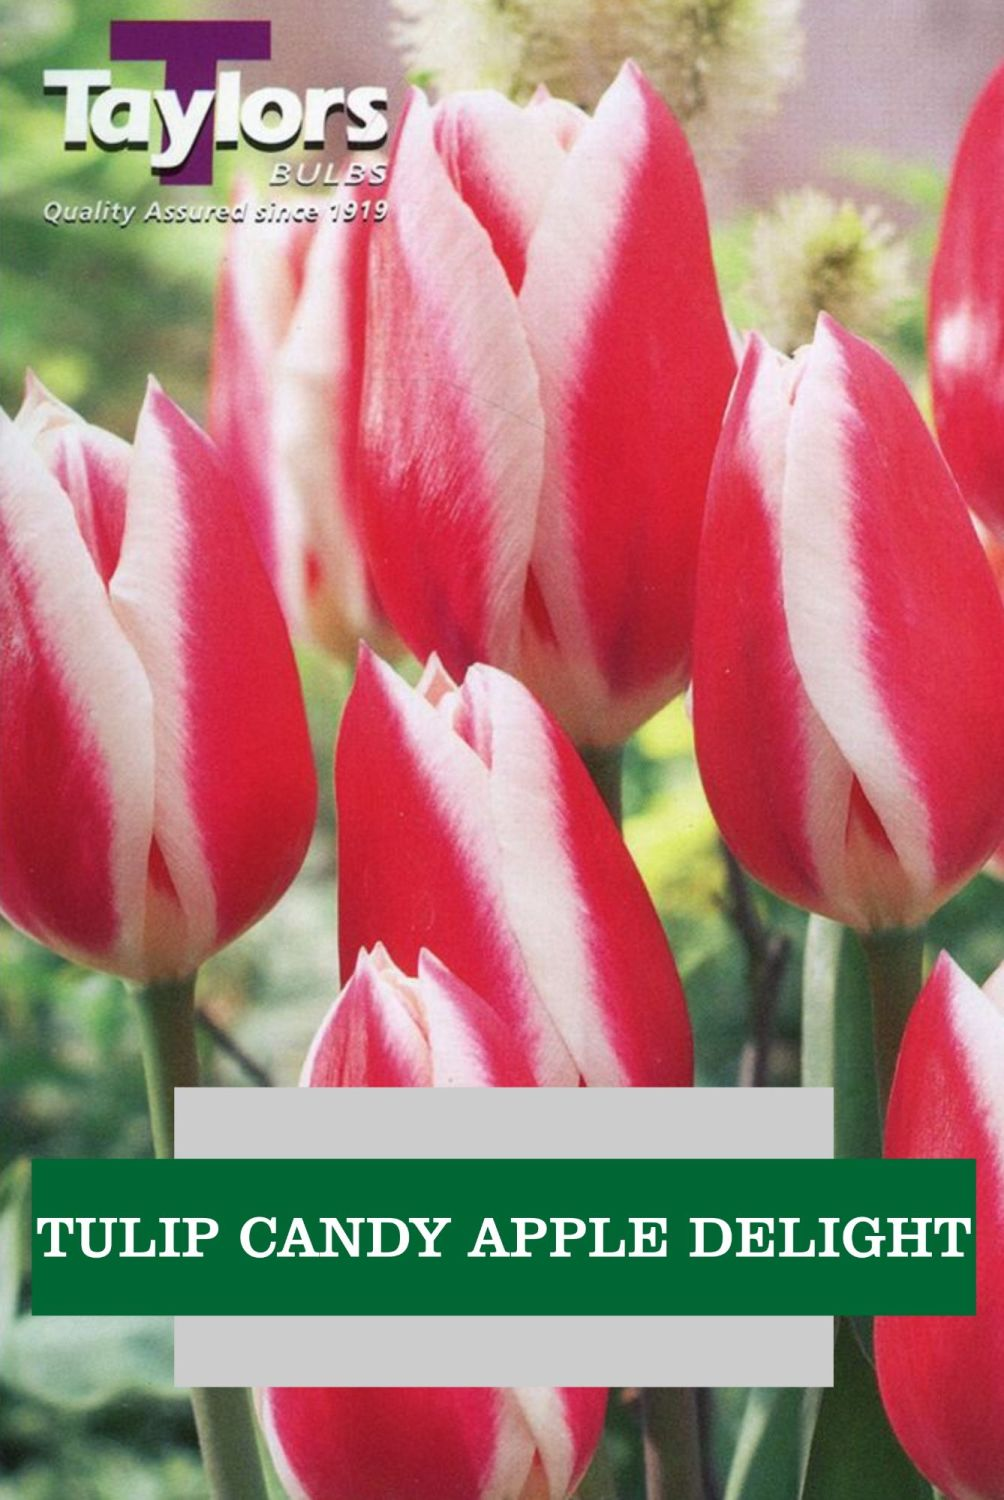 TULIP CANDY APPLE DELIGHT